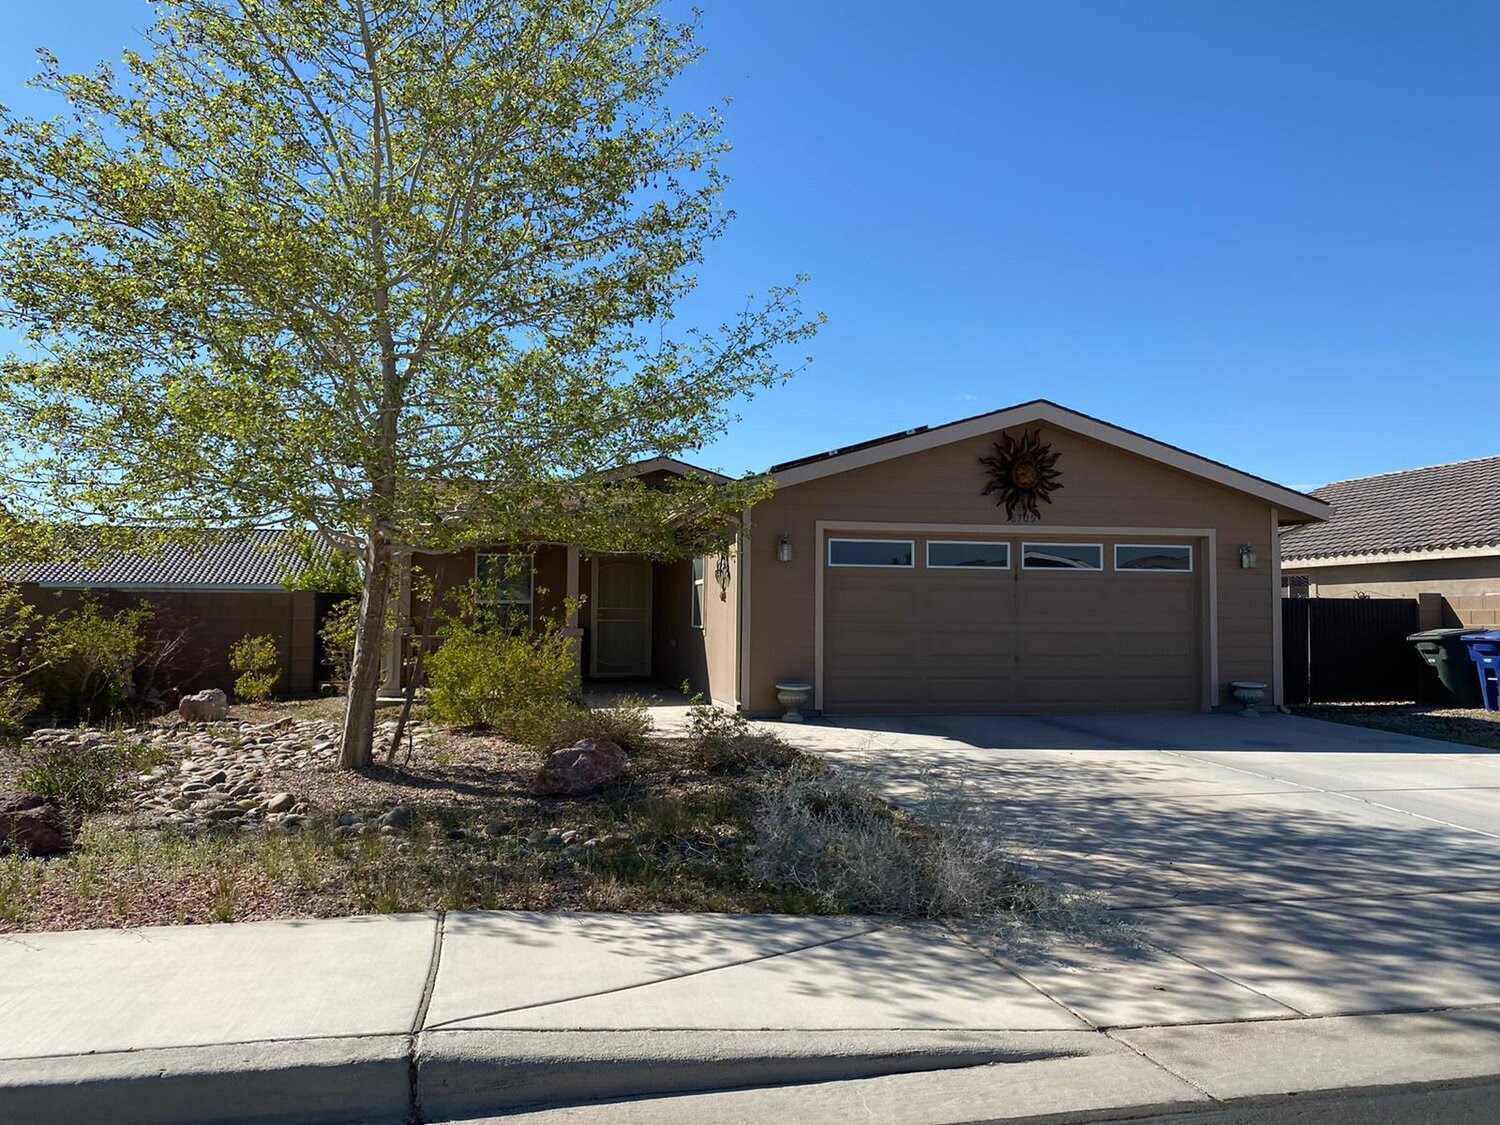 8709 E 34th Ln, Yuma, AZ 85365 Western Arizona wholesale opportunity